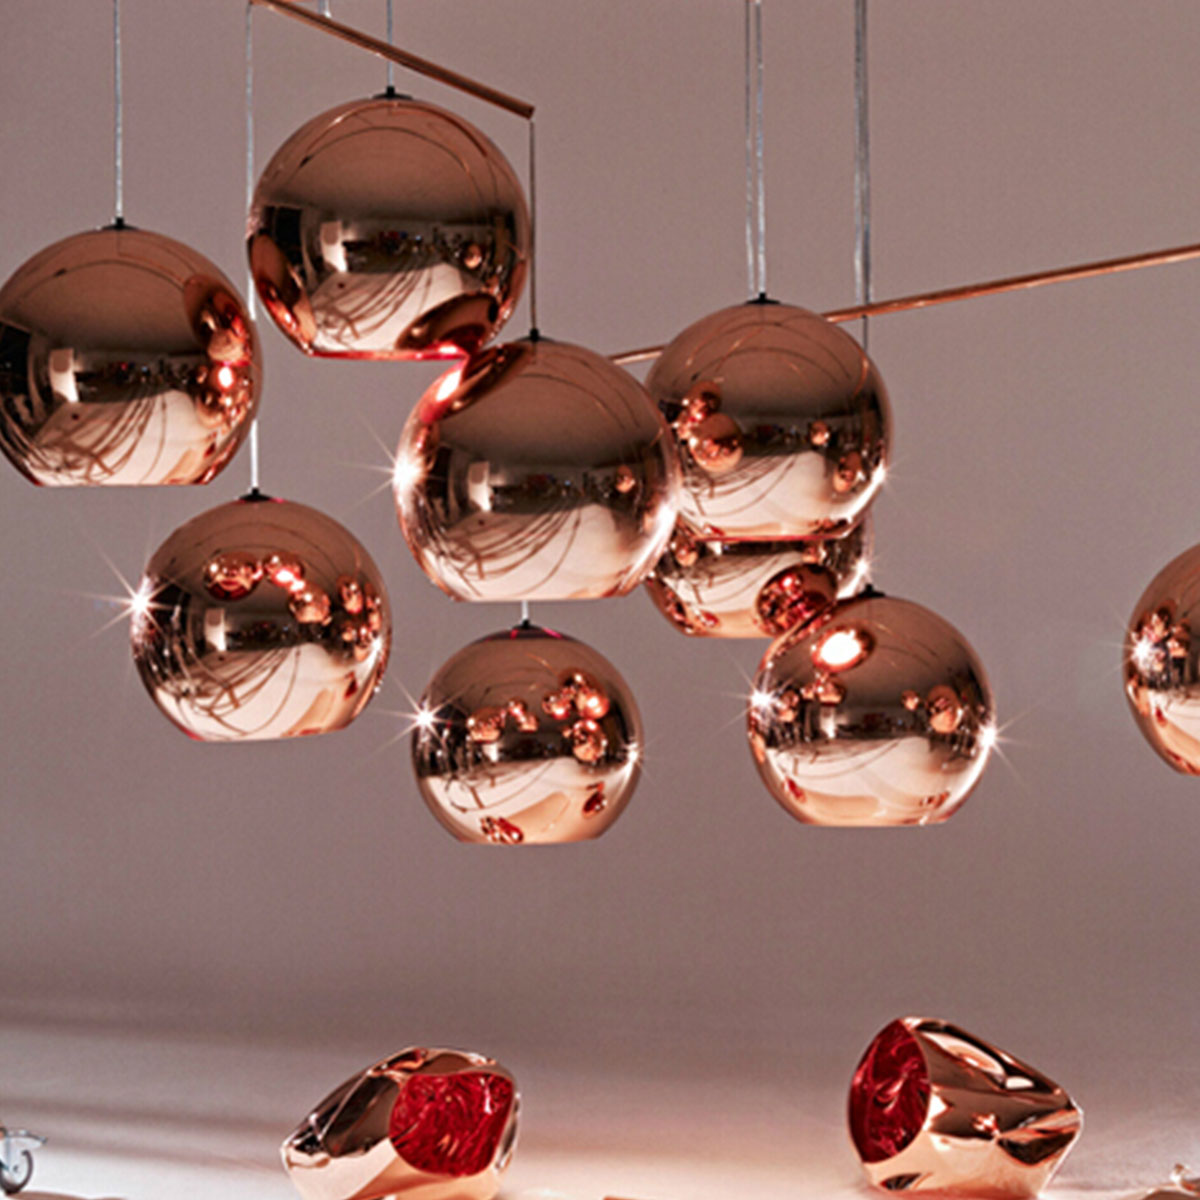 modern pendant lamps simple coppery ball shape pendant lamps creative staircase copper color glass pendant lights application lamps staircase